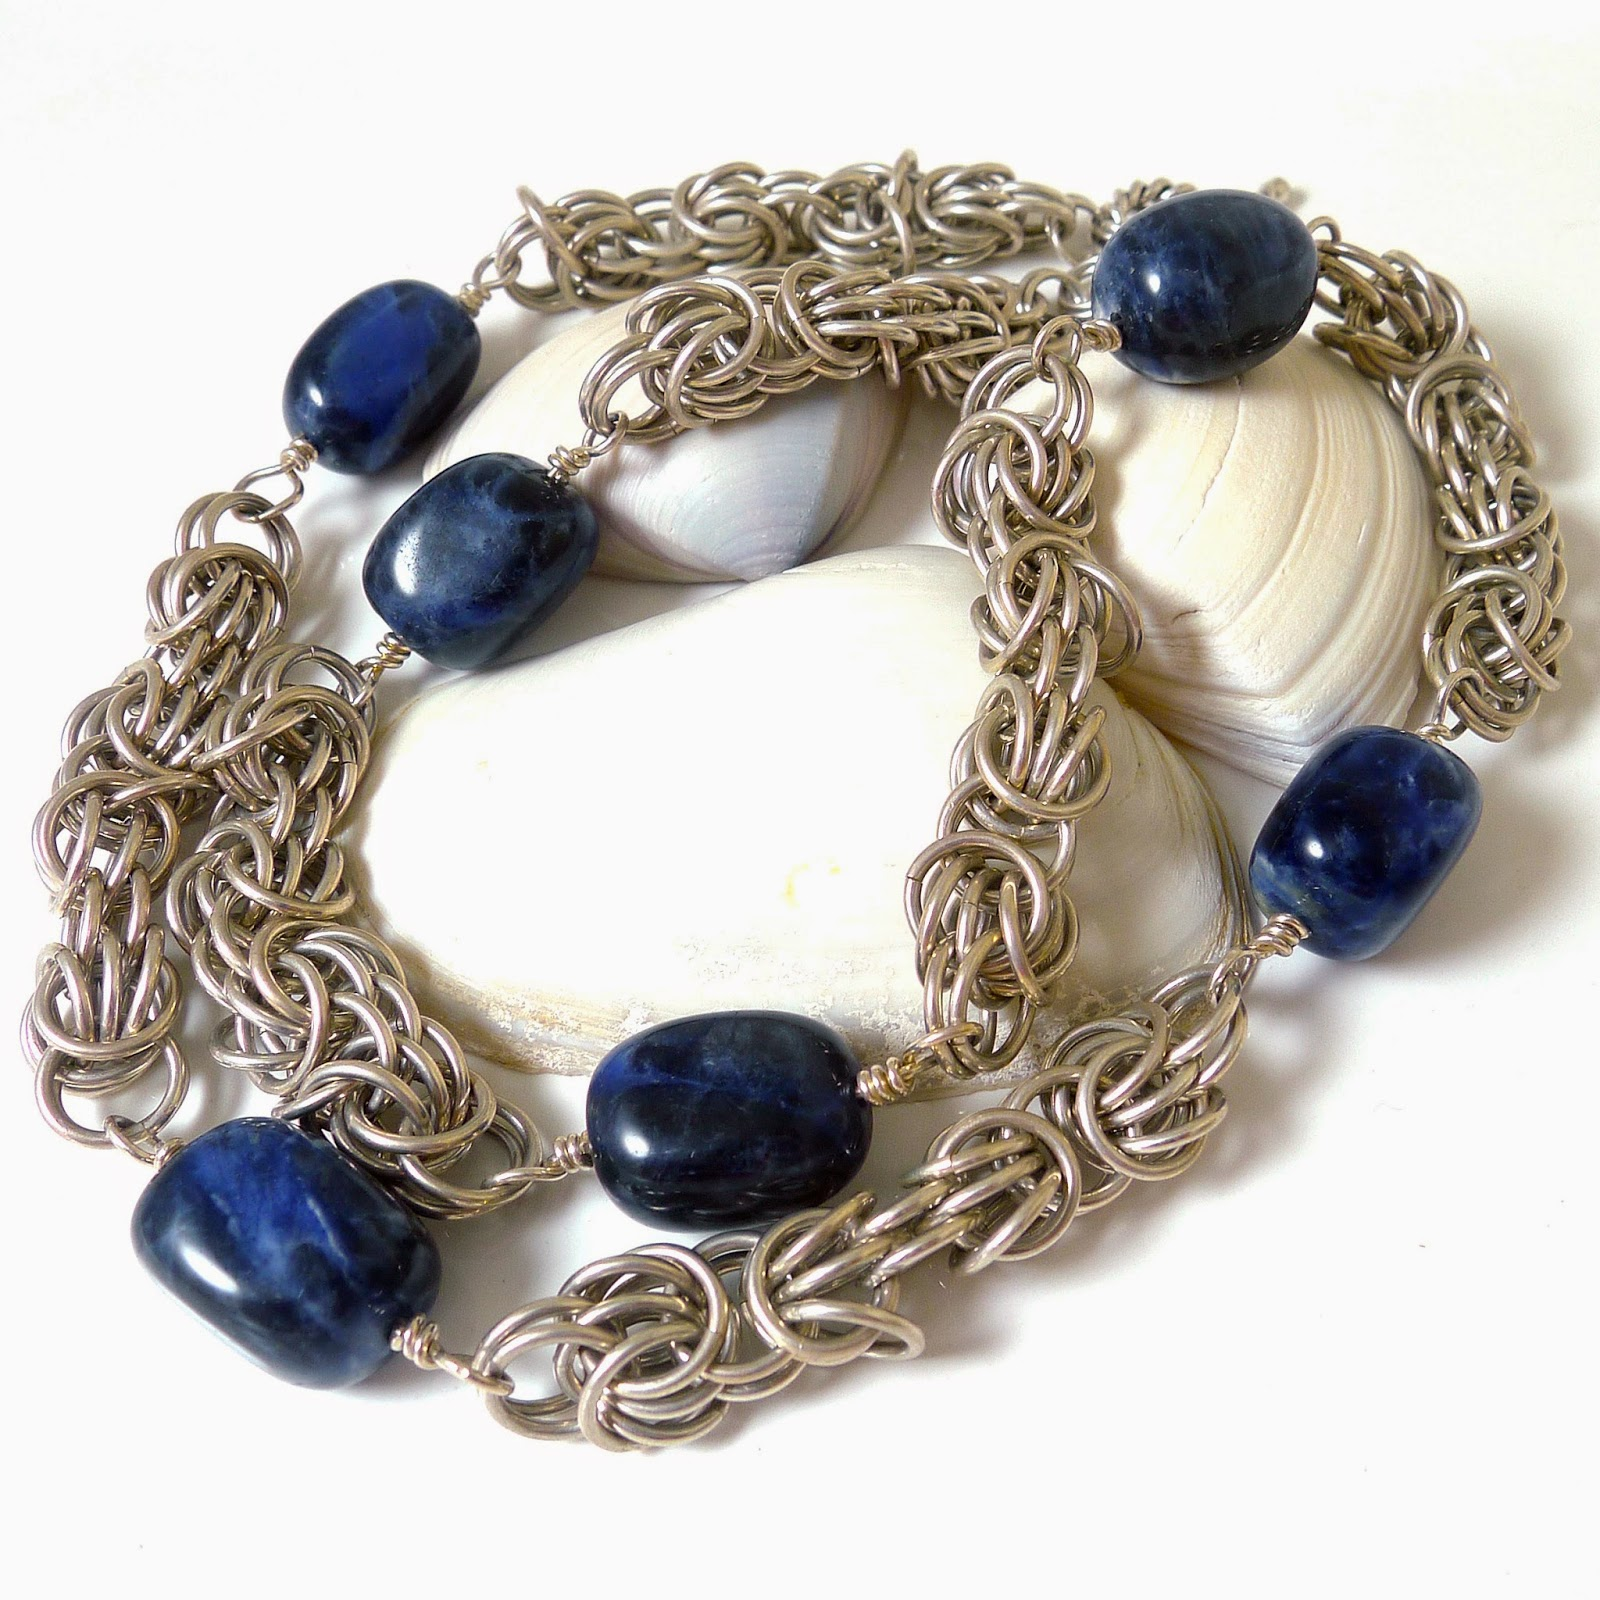 http://www.shazzabethcreations.co.nz/#!product/prd1/2204506475/trizantine-blues-st.-silver-chainmaille-necklace